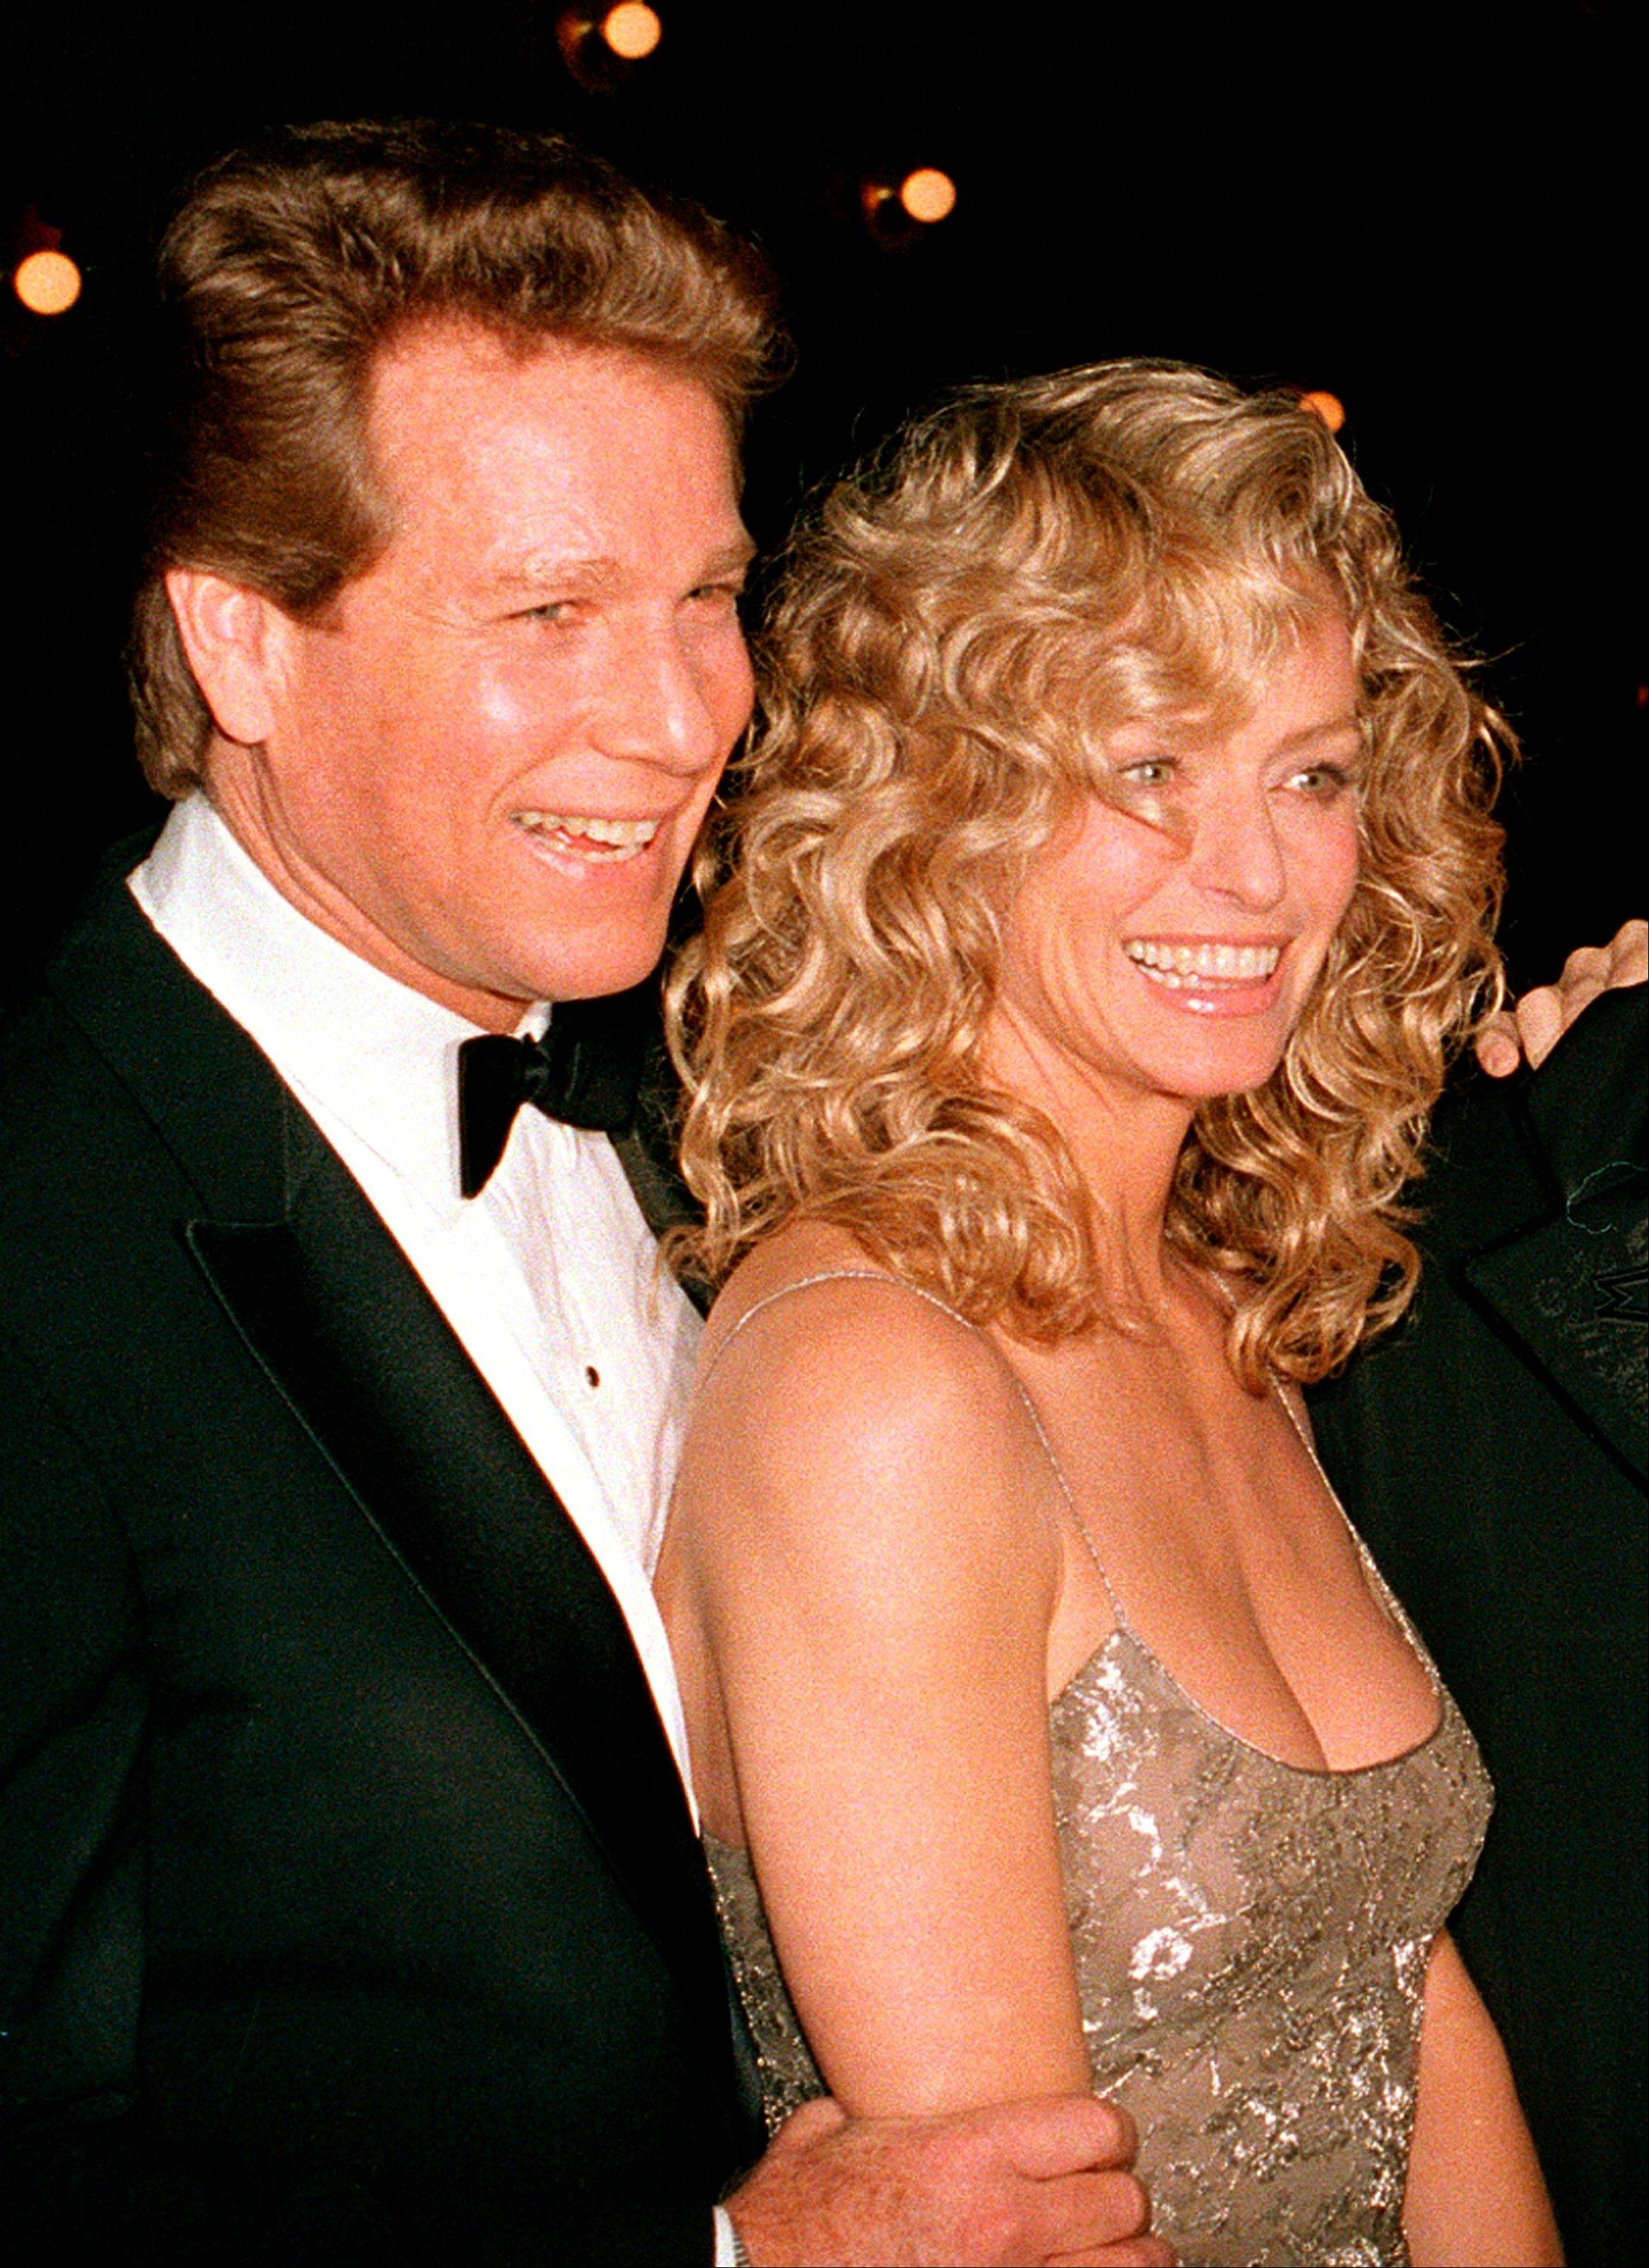 This March 5, 1989 file photo shows actors Ryan O�Neal, left, and Farrah Fawcett at the premiere of the film. �Chances Are,� in New York. Jury selection could begin as early as Thursday, Nov. 21, in a Los Angeles courtroom in a dispute between O�Neal and the University of Texas at Austin over the ownership of an Andy Warhol portrait of Fawcett.